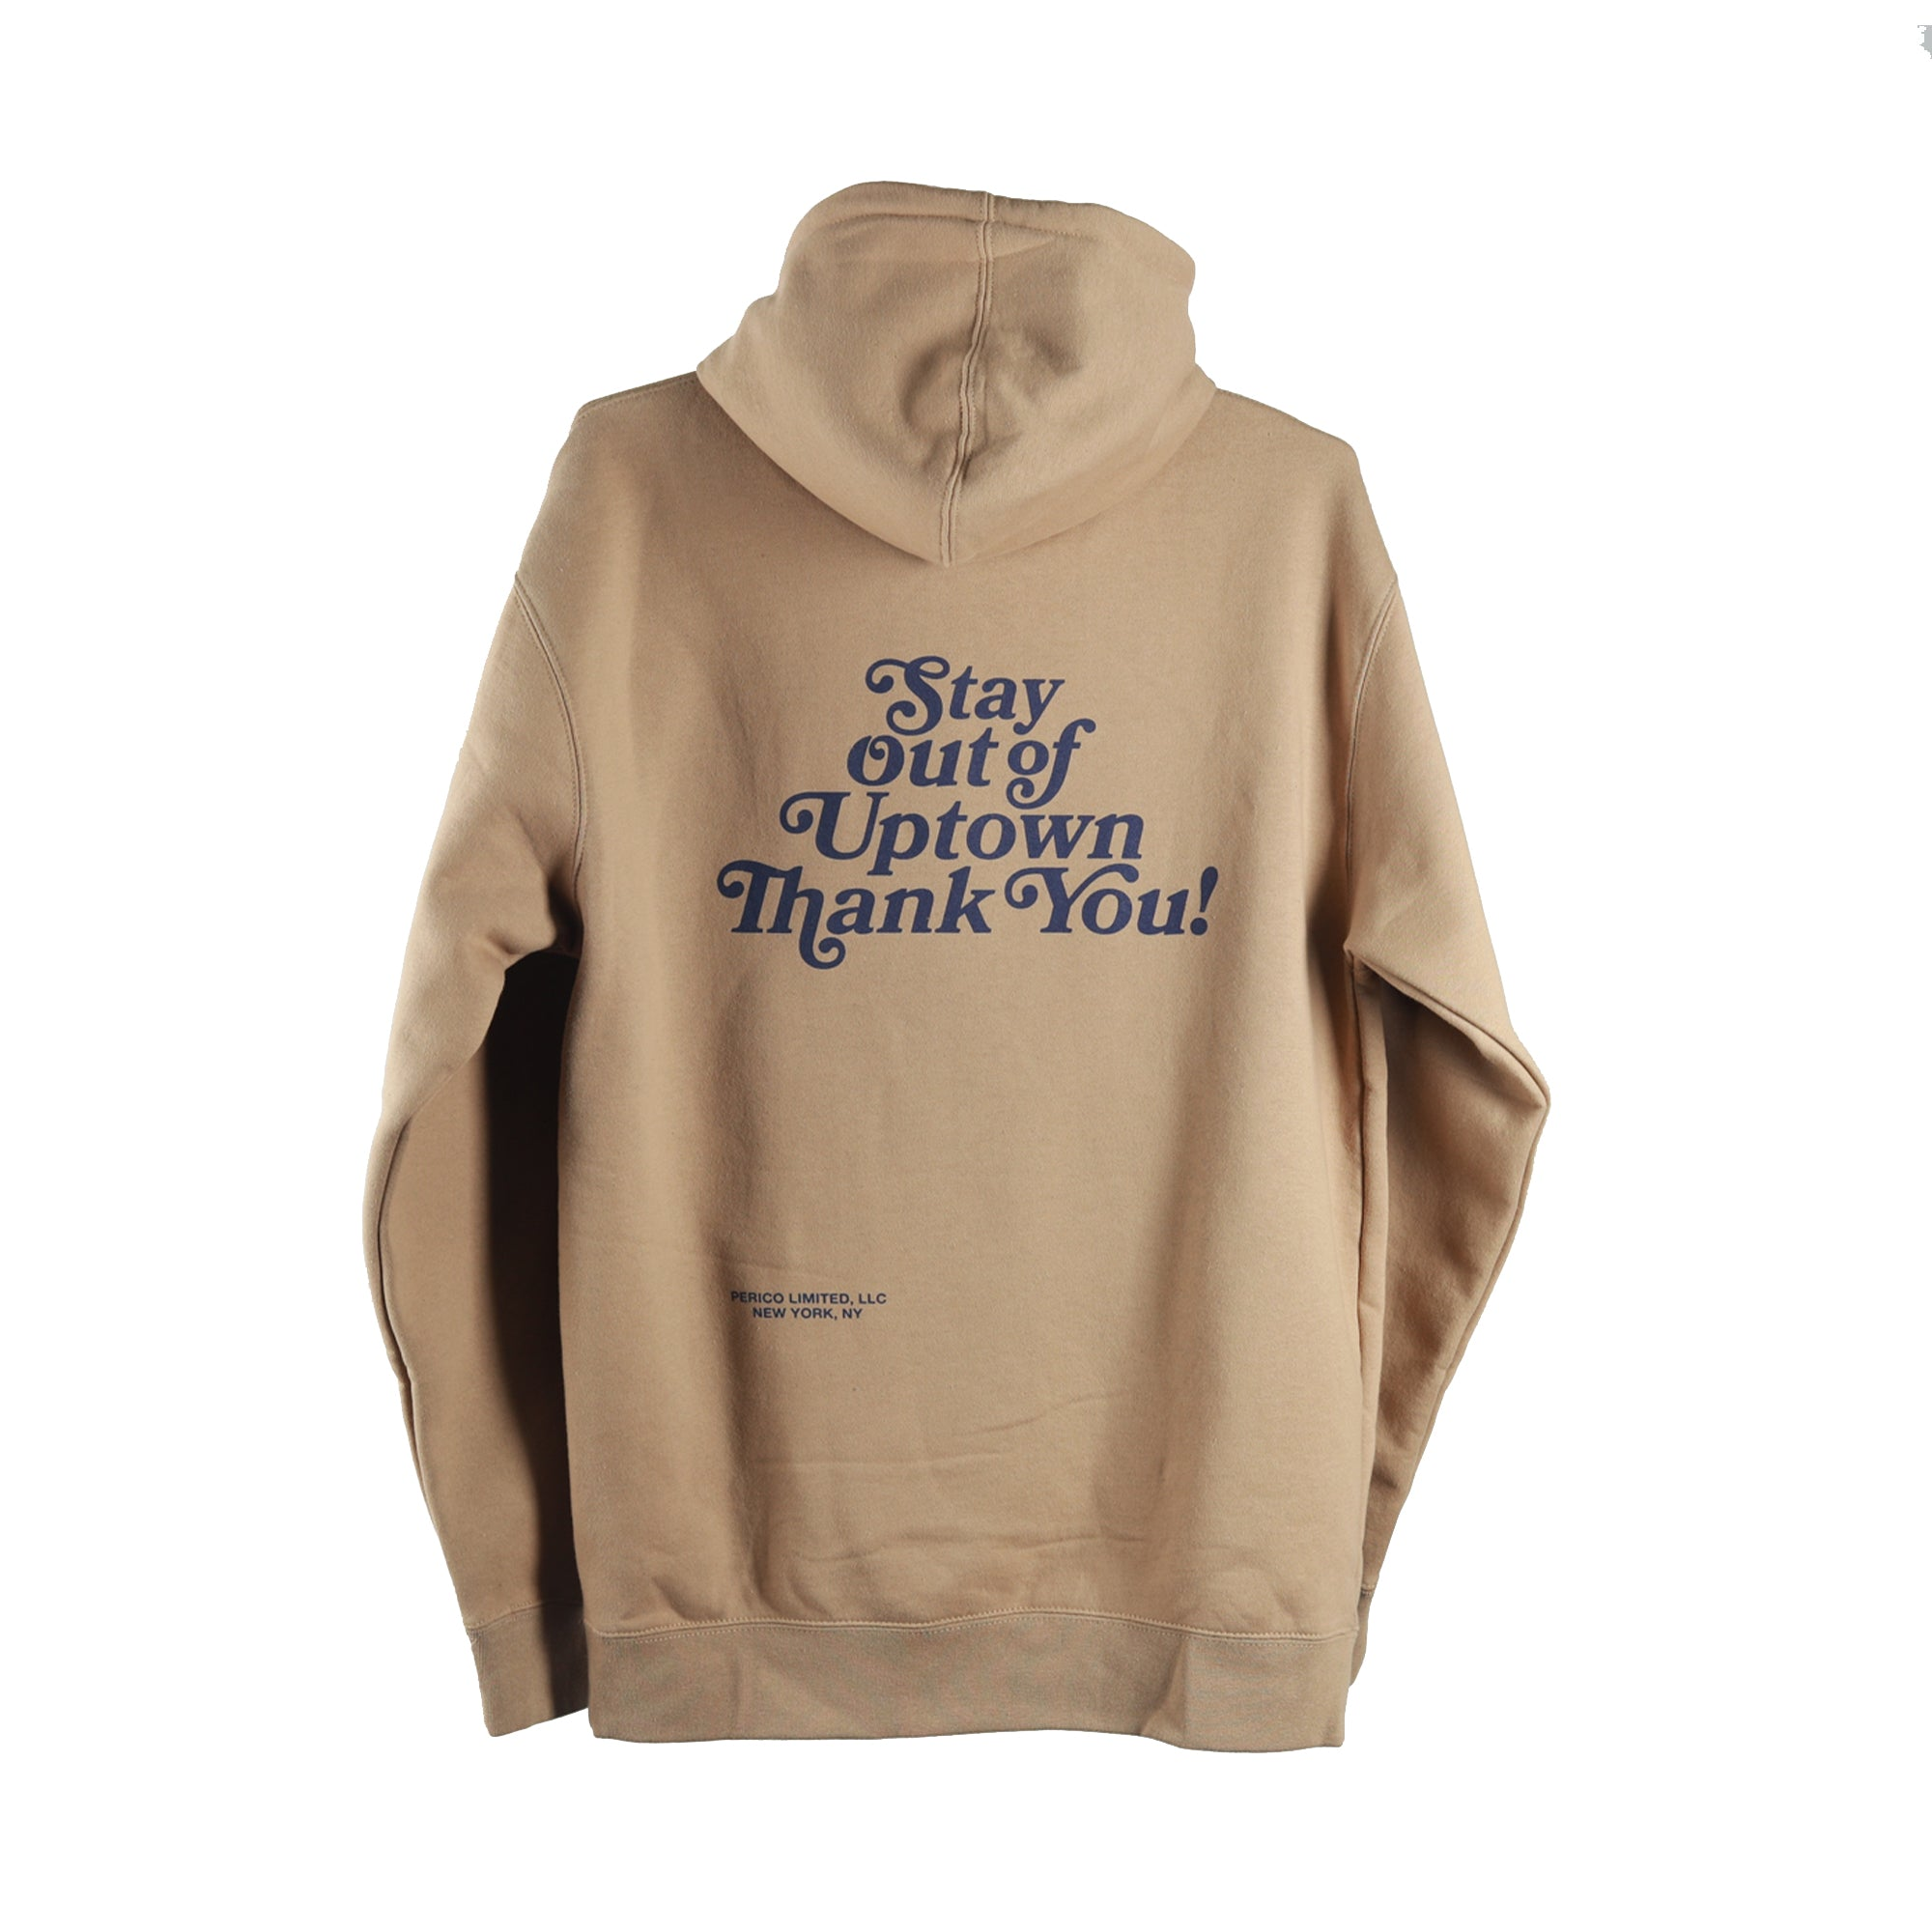 Stay Out of Uptown - Sand Hoodie